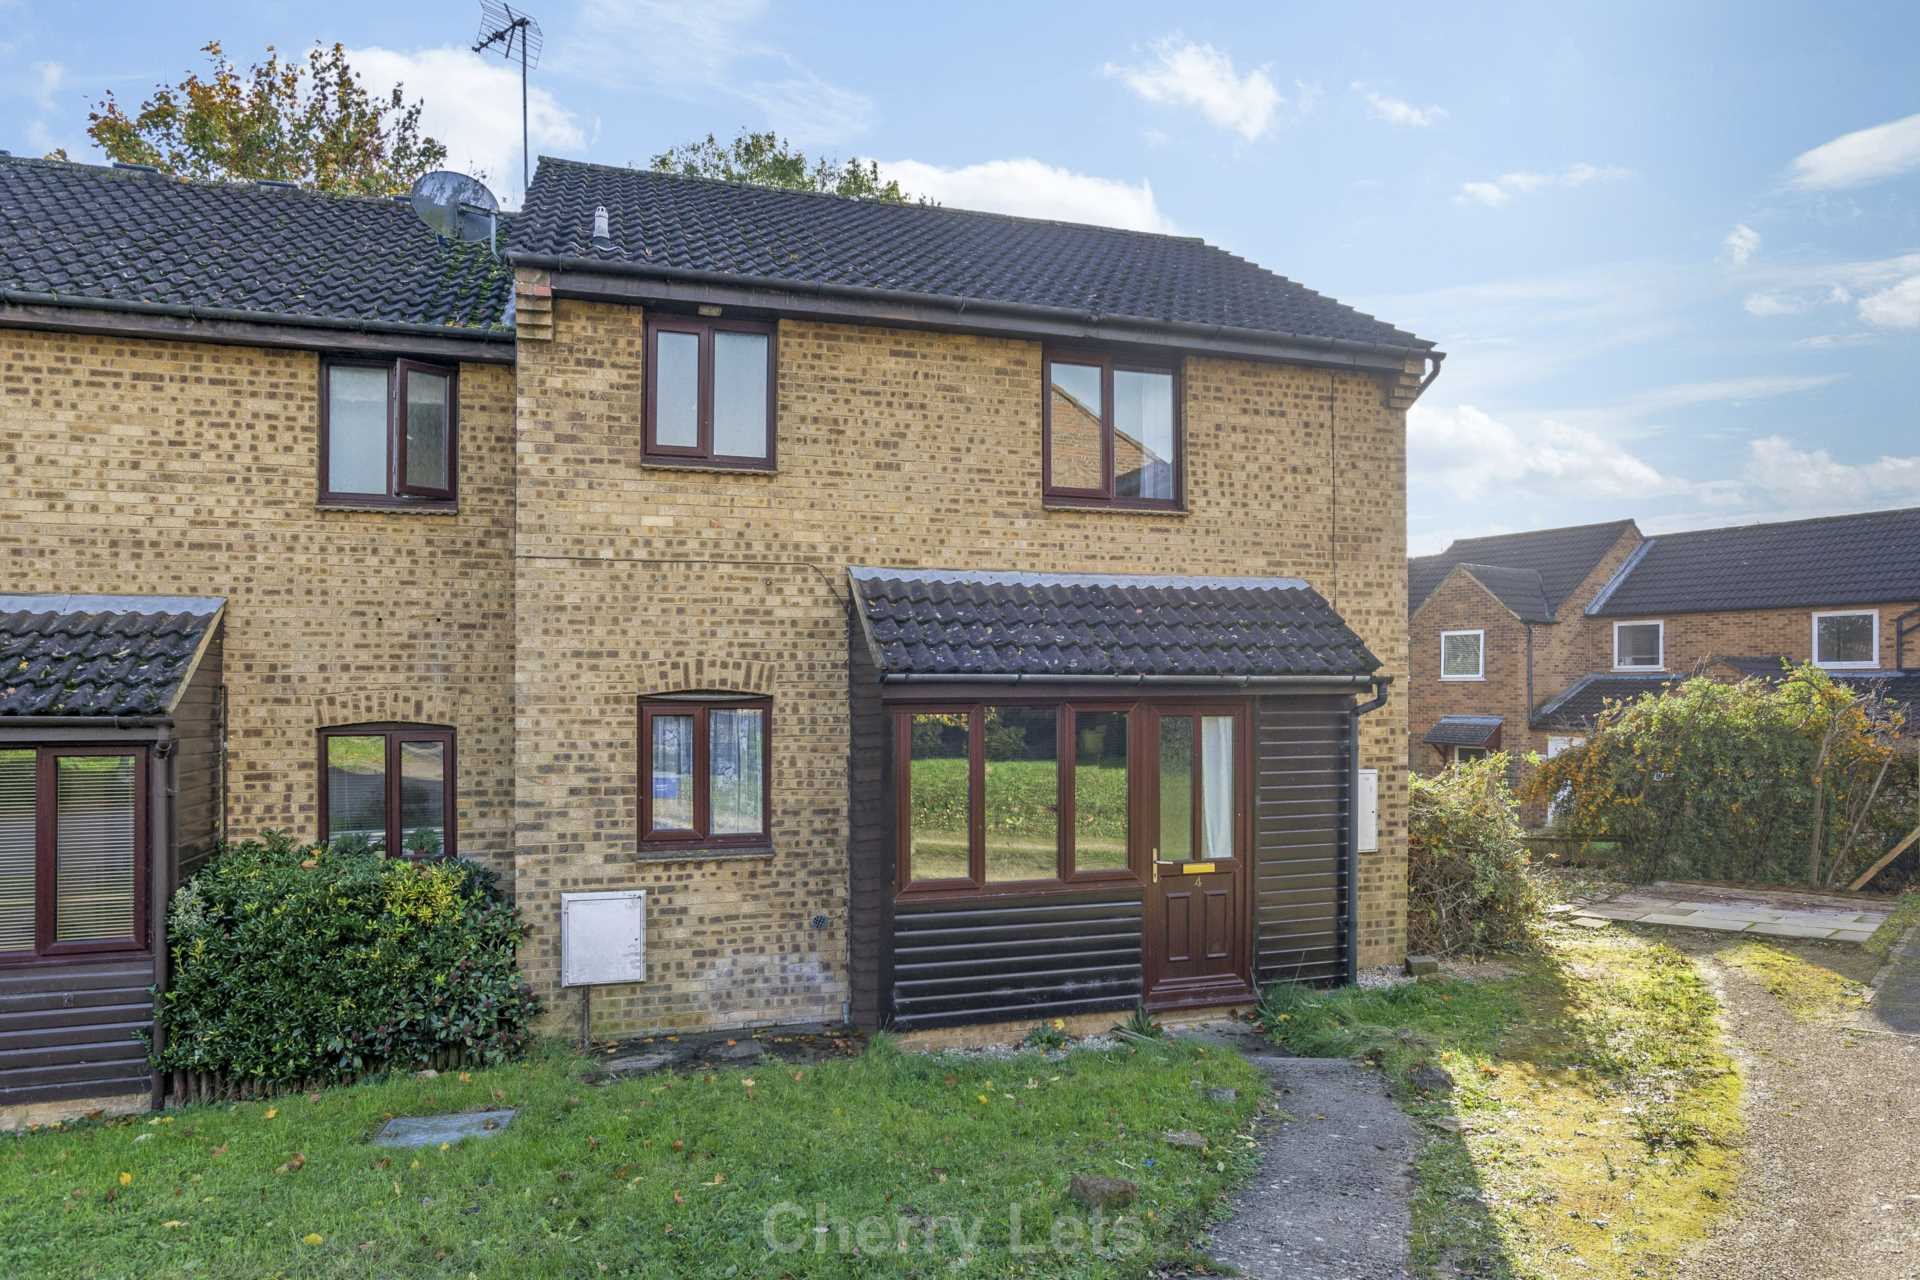 1 bed end of terrace house to rent in Bedford Close, Banbury, OX16 9